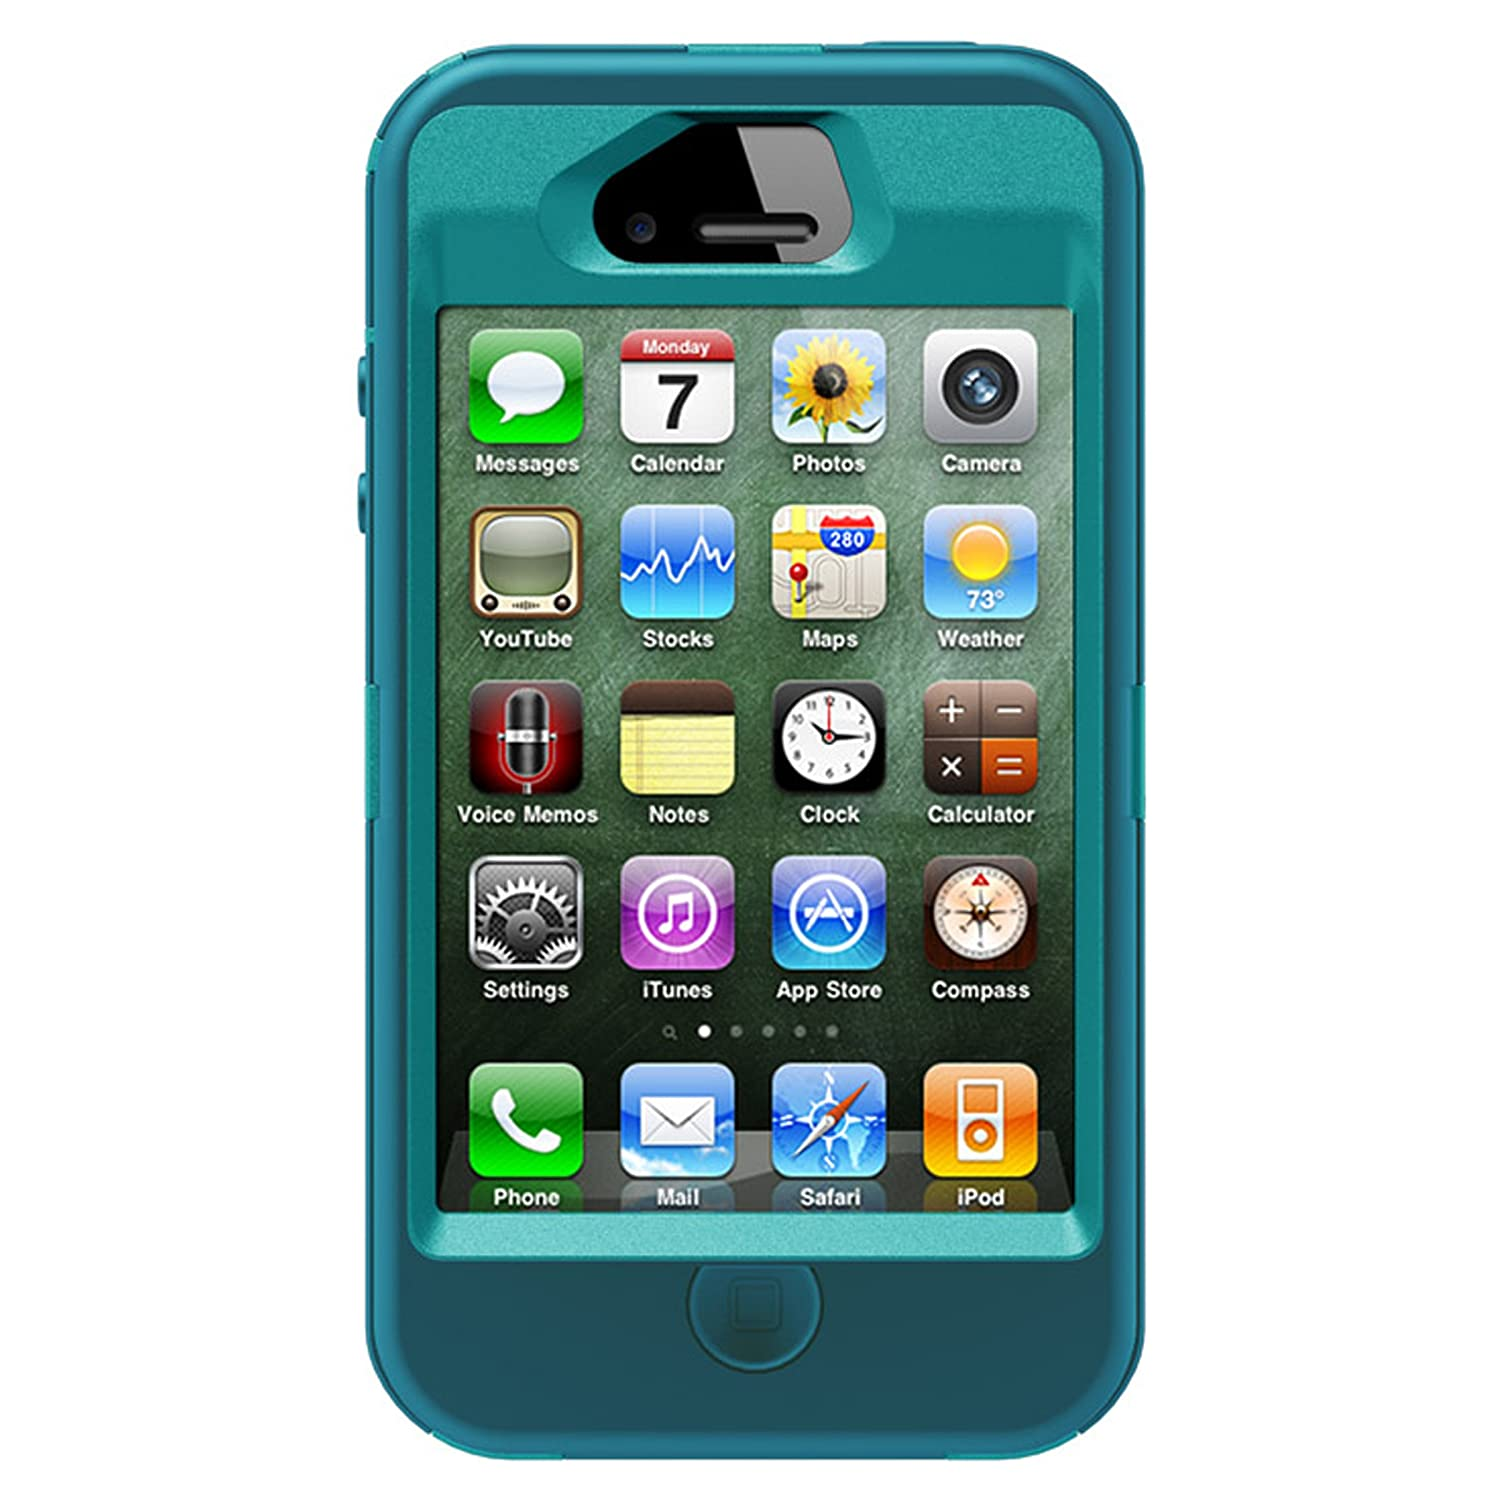 uk availability b169a 24776 OtterBox Defender Series Case and Holster for iPhone 4/4S - Retail  Packaging - Teal/Blue (Discontinued by Manufacturer)